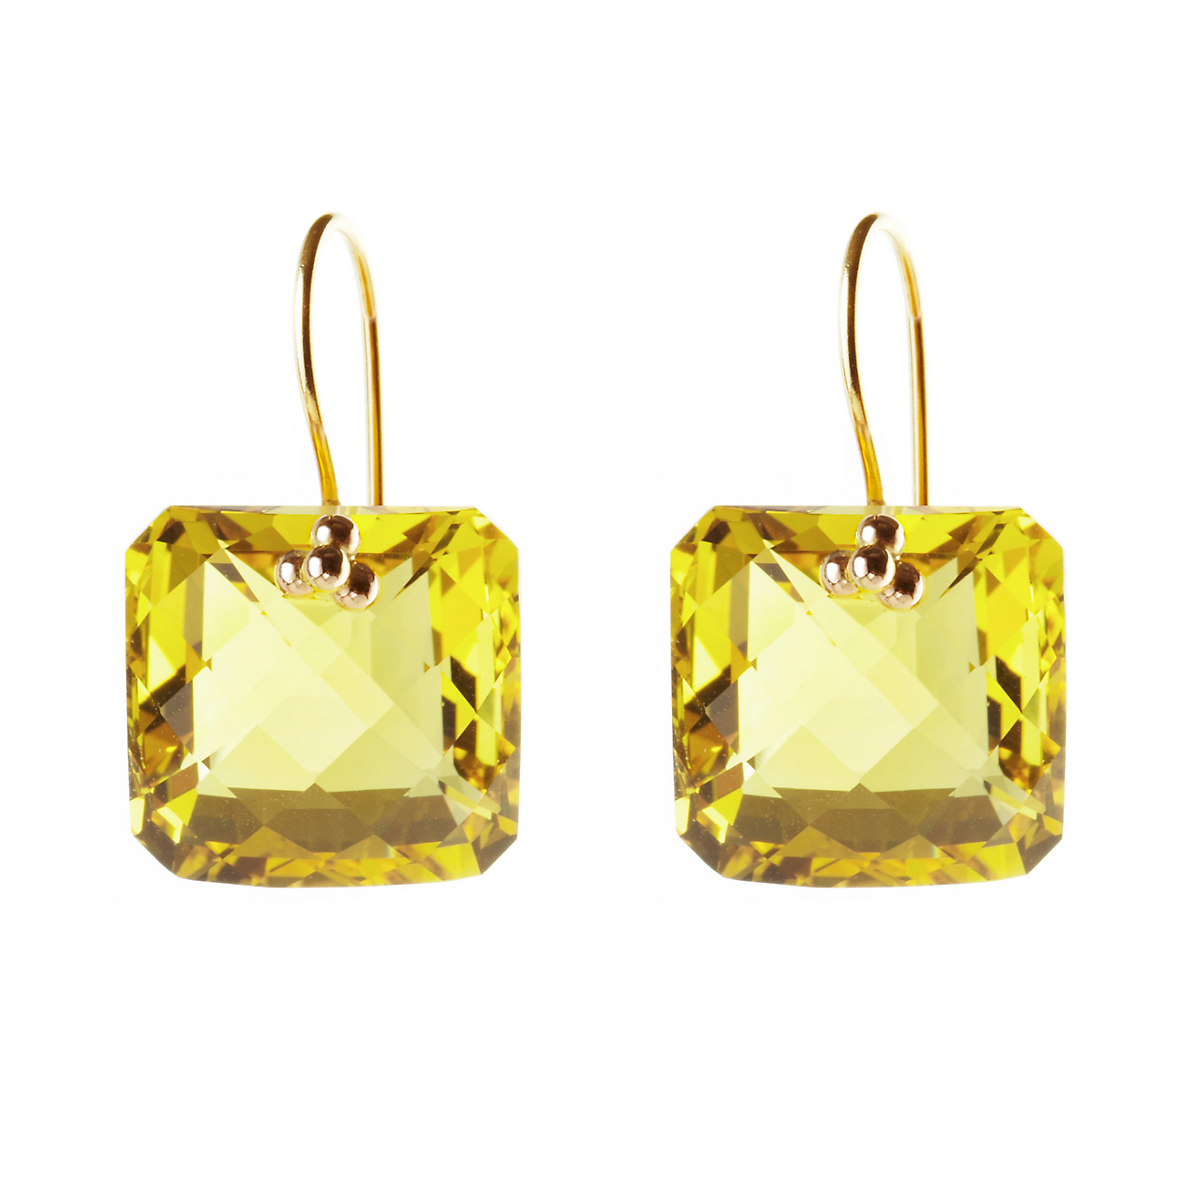 Nikki Baker Lemon Quartz Drop Earrings